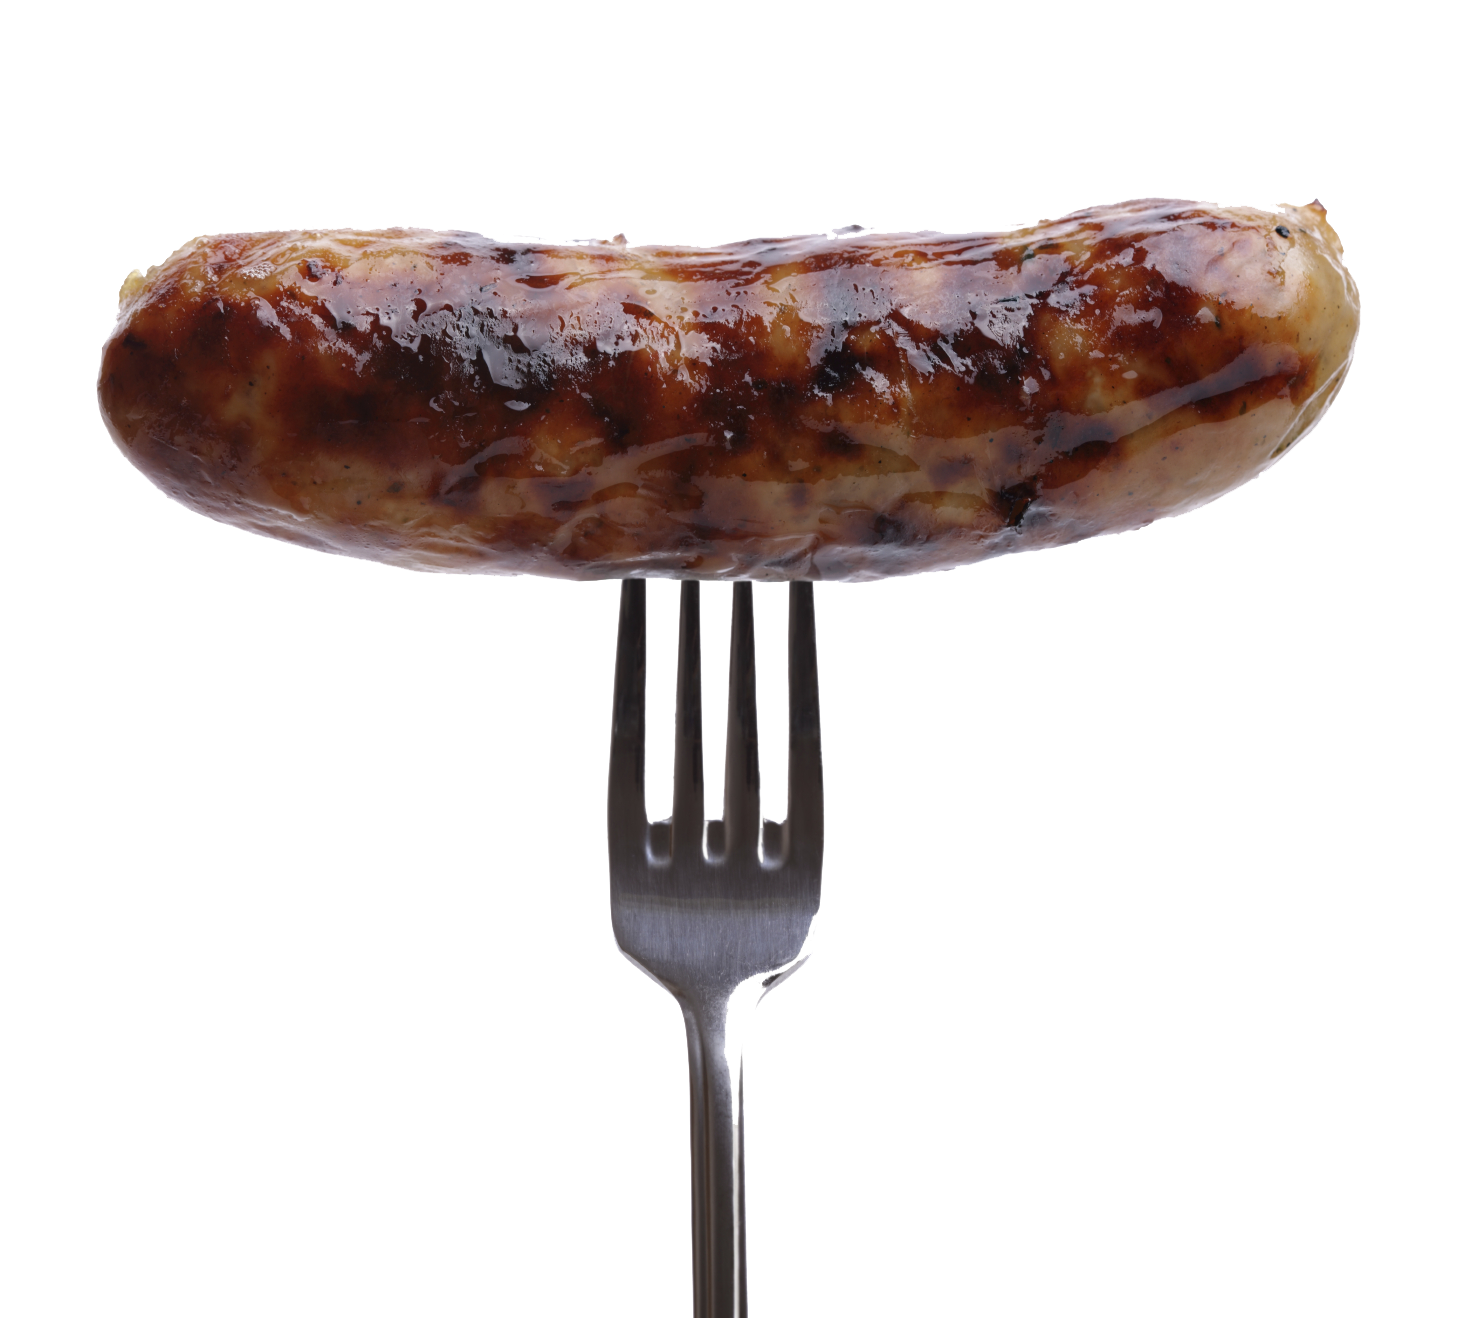 Beef, Sausage, Coiled, Cooked, Edible, Sausage, Grill, Png 4861